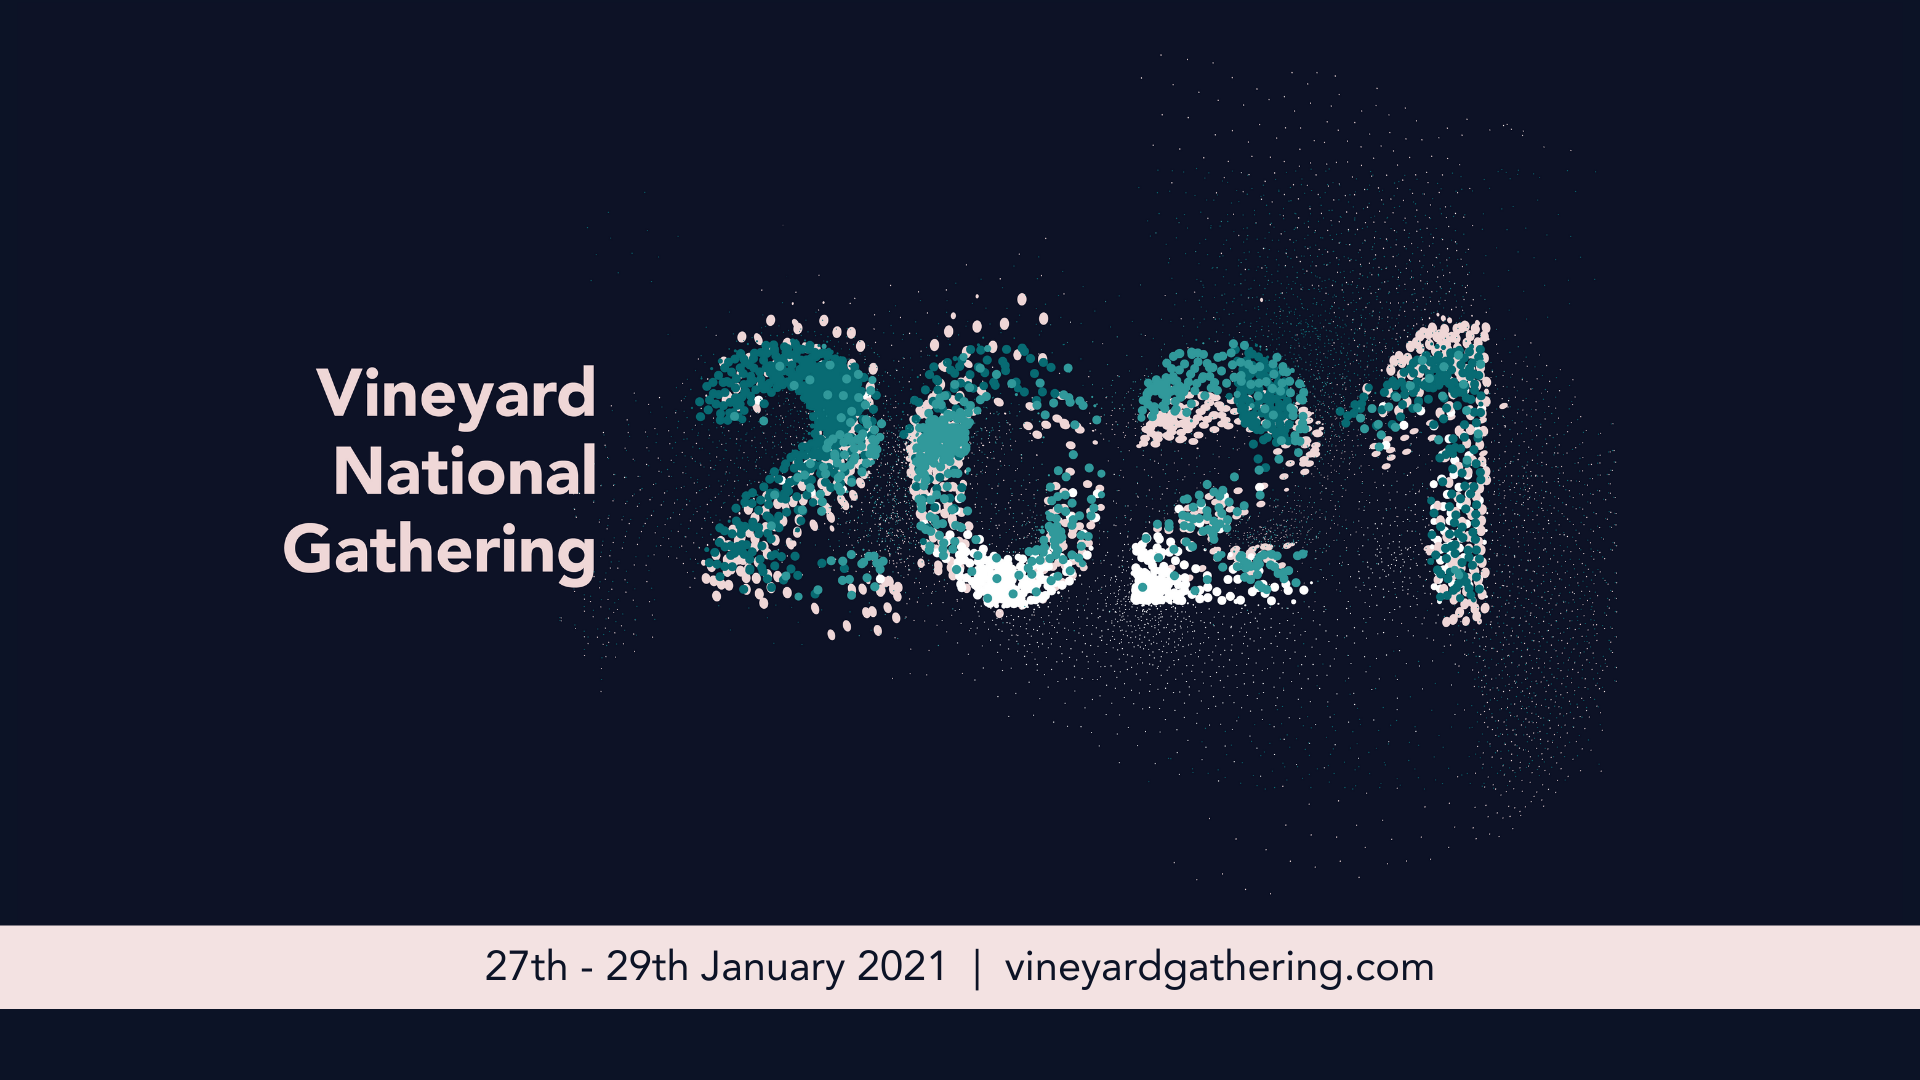 Vineyard National Gathering 27-29 Jan